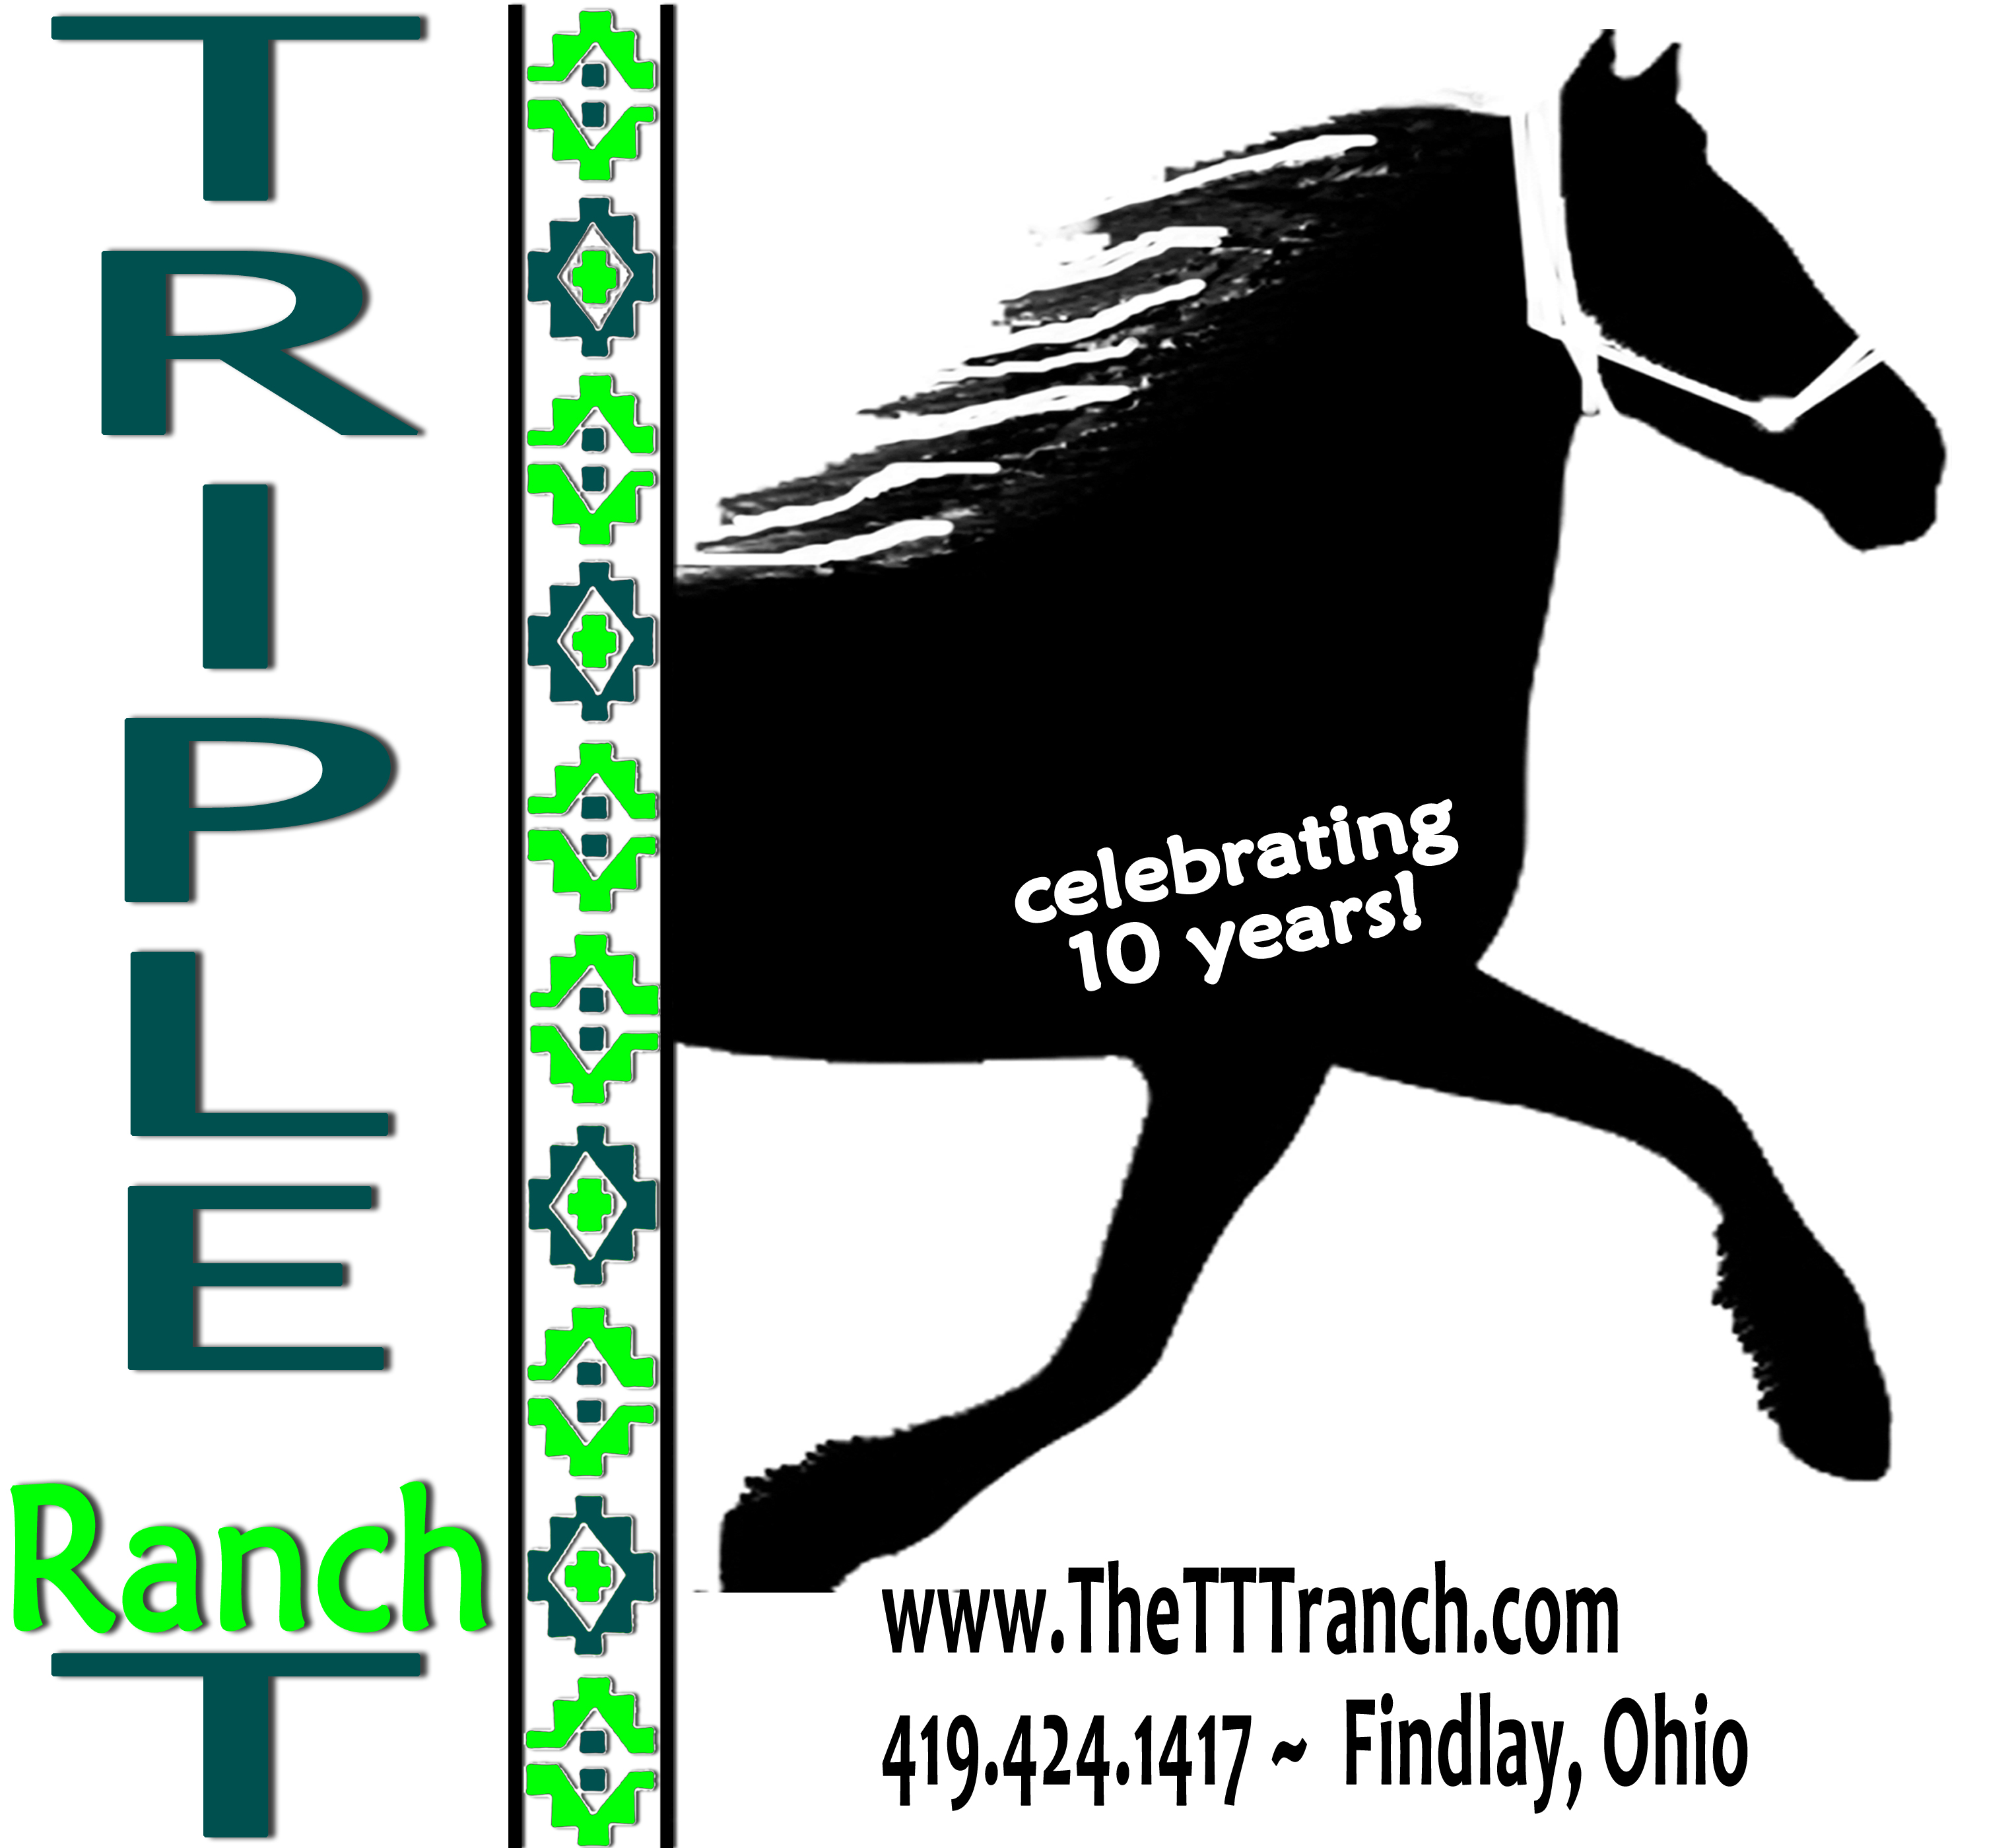 We are celebrating 10 years at the Triple T Ranch!